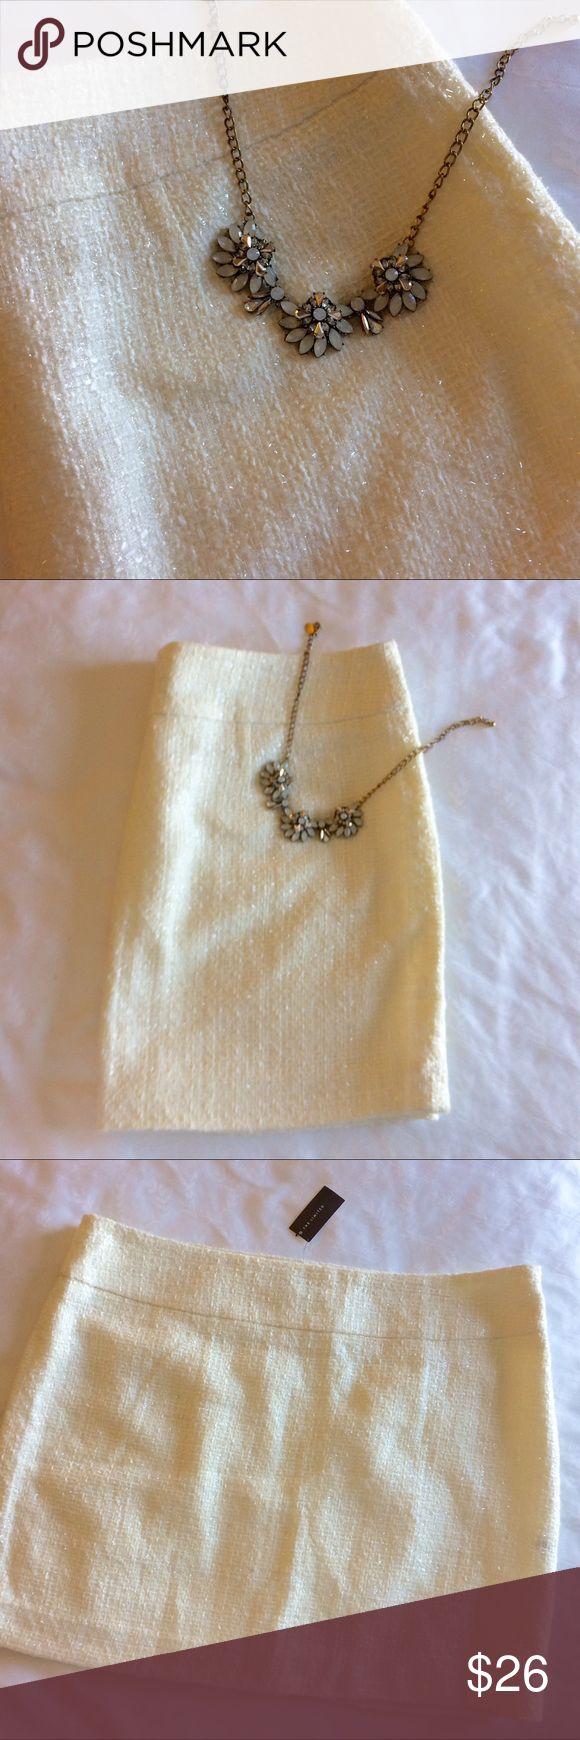 The Limited White Sparkly Skirt NWT 💙 The Limited White Sparkly Skirt NWT - beautiful w/ hints of sparkle- even nicer in person. Floor sample - new and never worn. Add Sandals for day time or add boots for evening The Limited Skirts